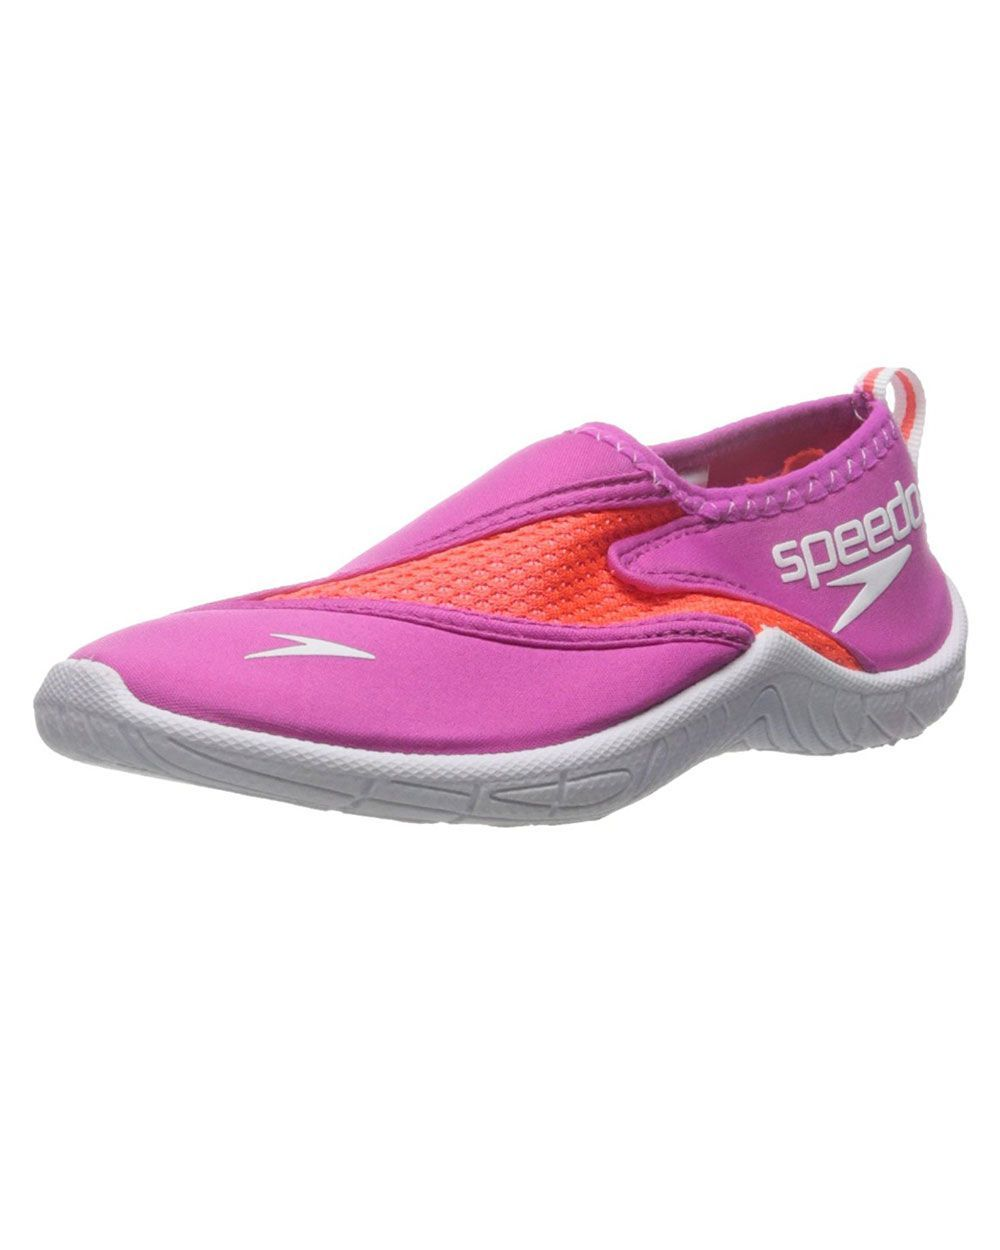 (Pretty Dorky) Water Shoes